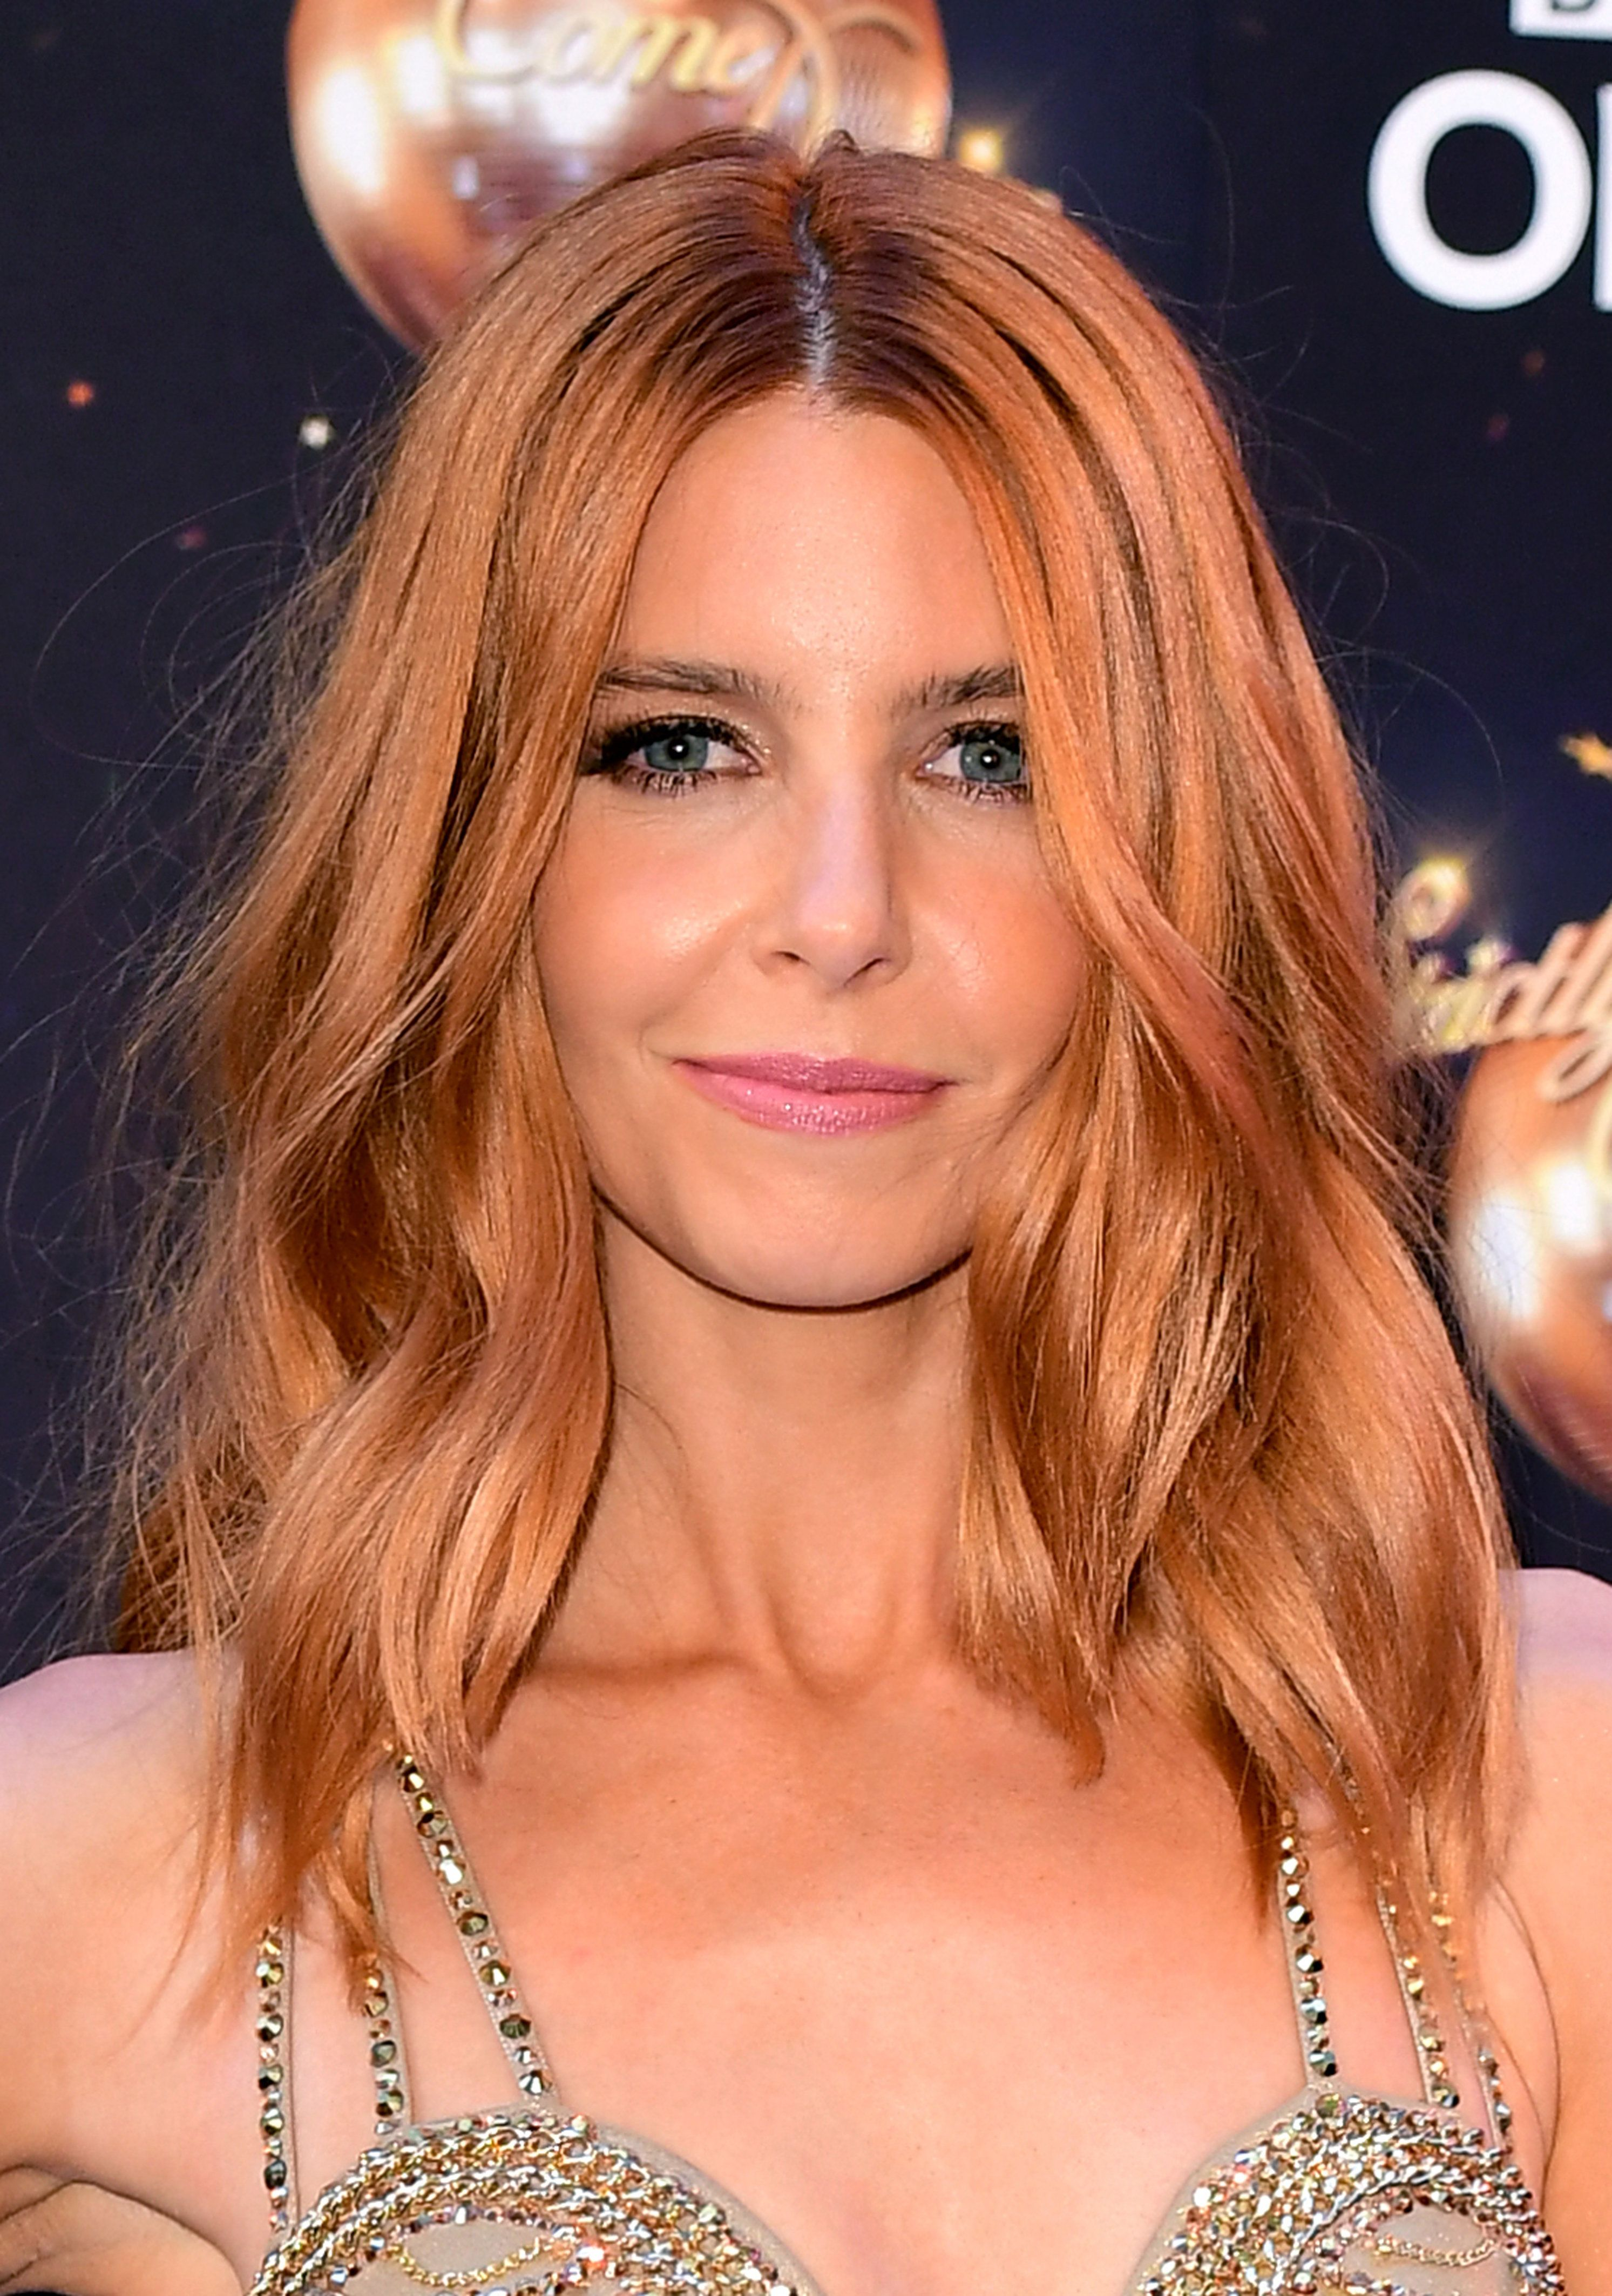 OPTIONS: What Should 'Strictly Come Dancing' Winner Stacey Dooley Do Next? We've Got Some